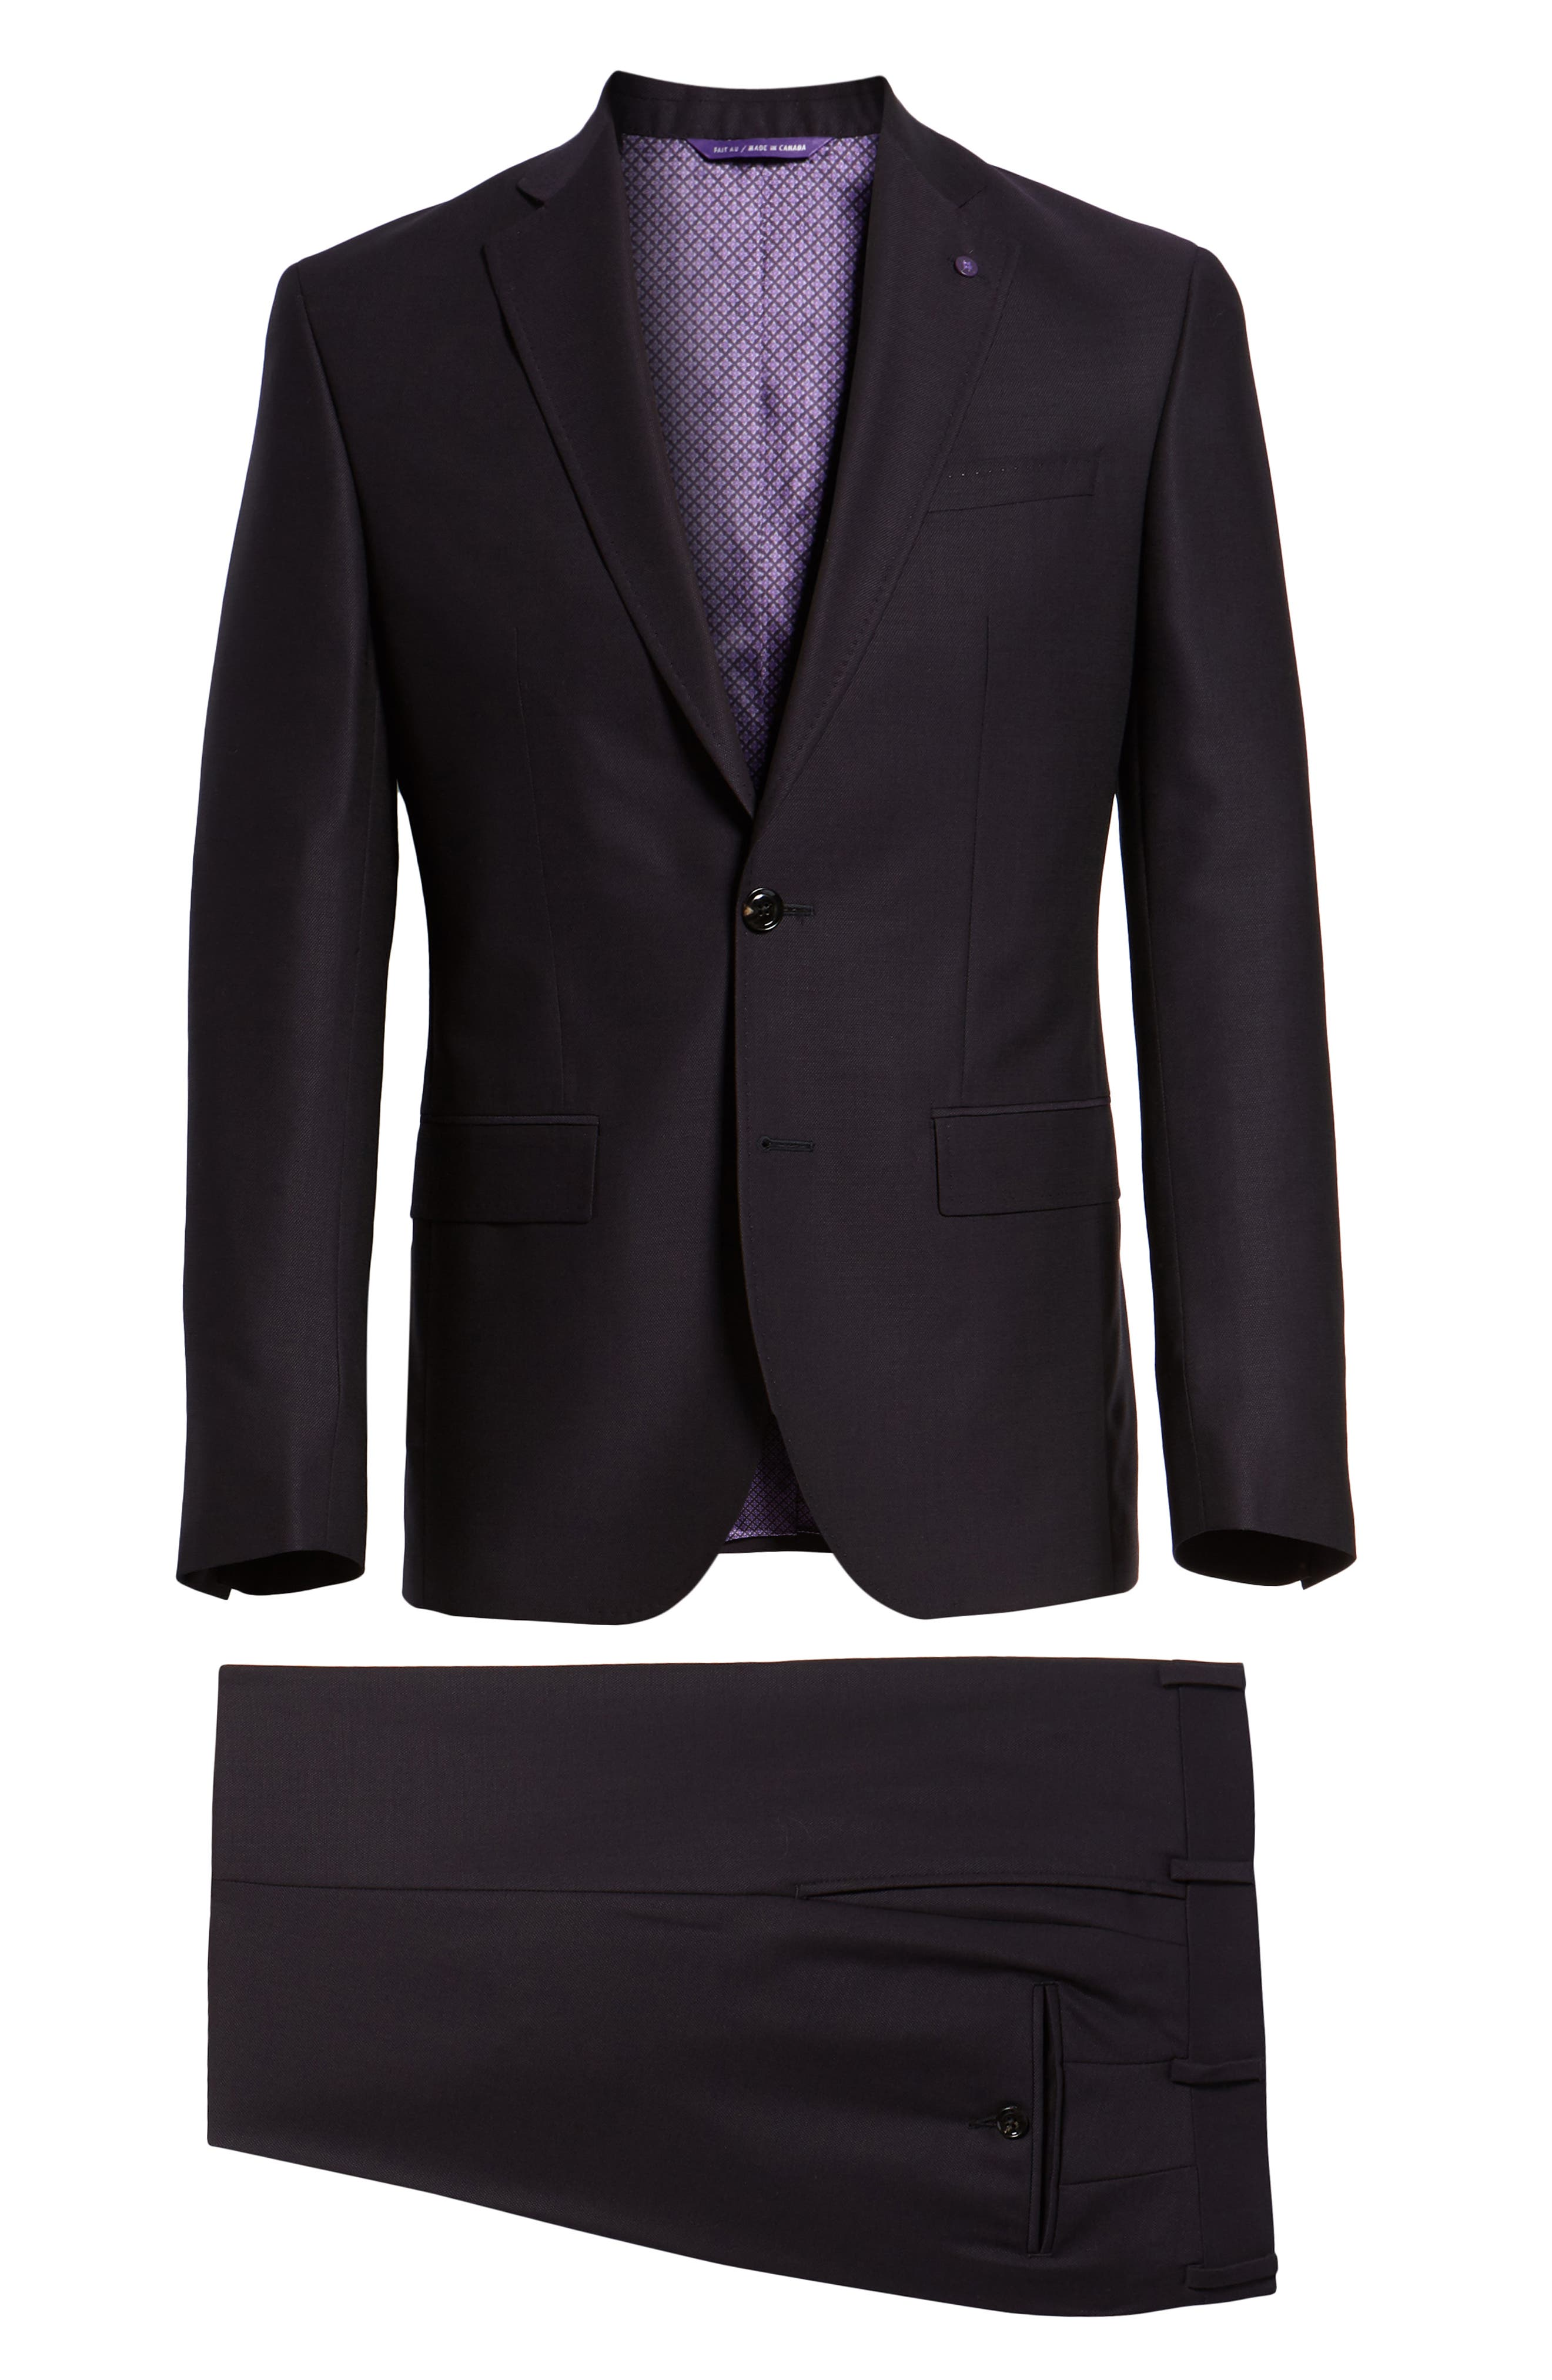 Roger Extra Trim Fit Solid Wool Suit,                             Alternate thumbnail 8, color,                             DEEP EGGPLANT